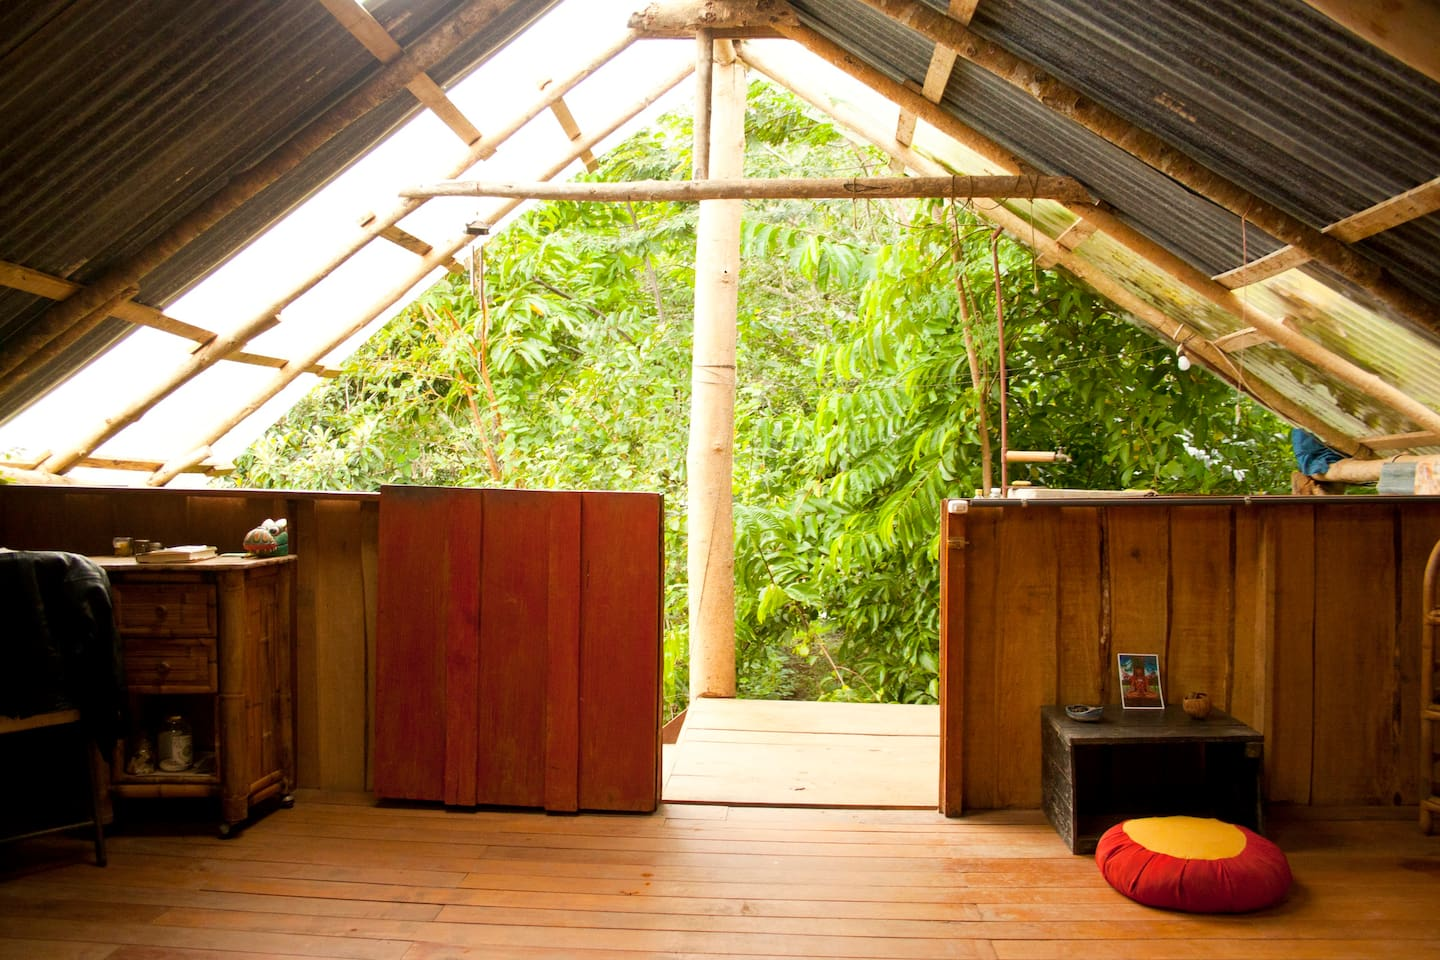 Ready to wake up in paradise? Jungle Suite is a private double room with shared compost toilet and shower, located in a vibrant permaculture farm.